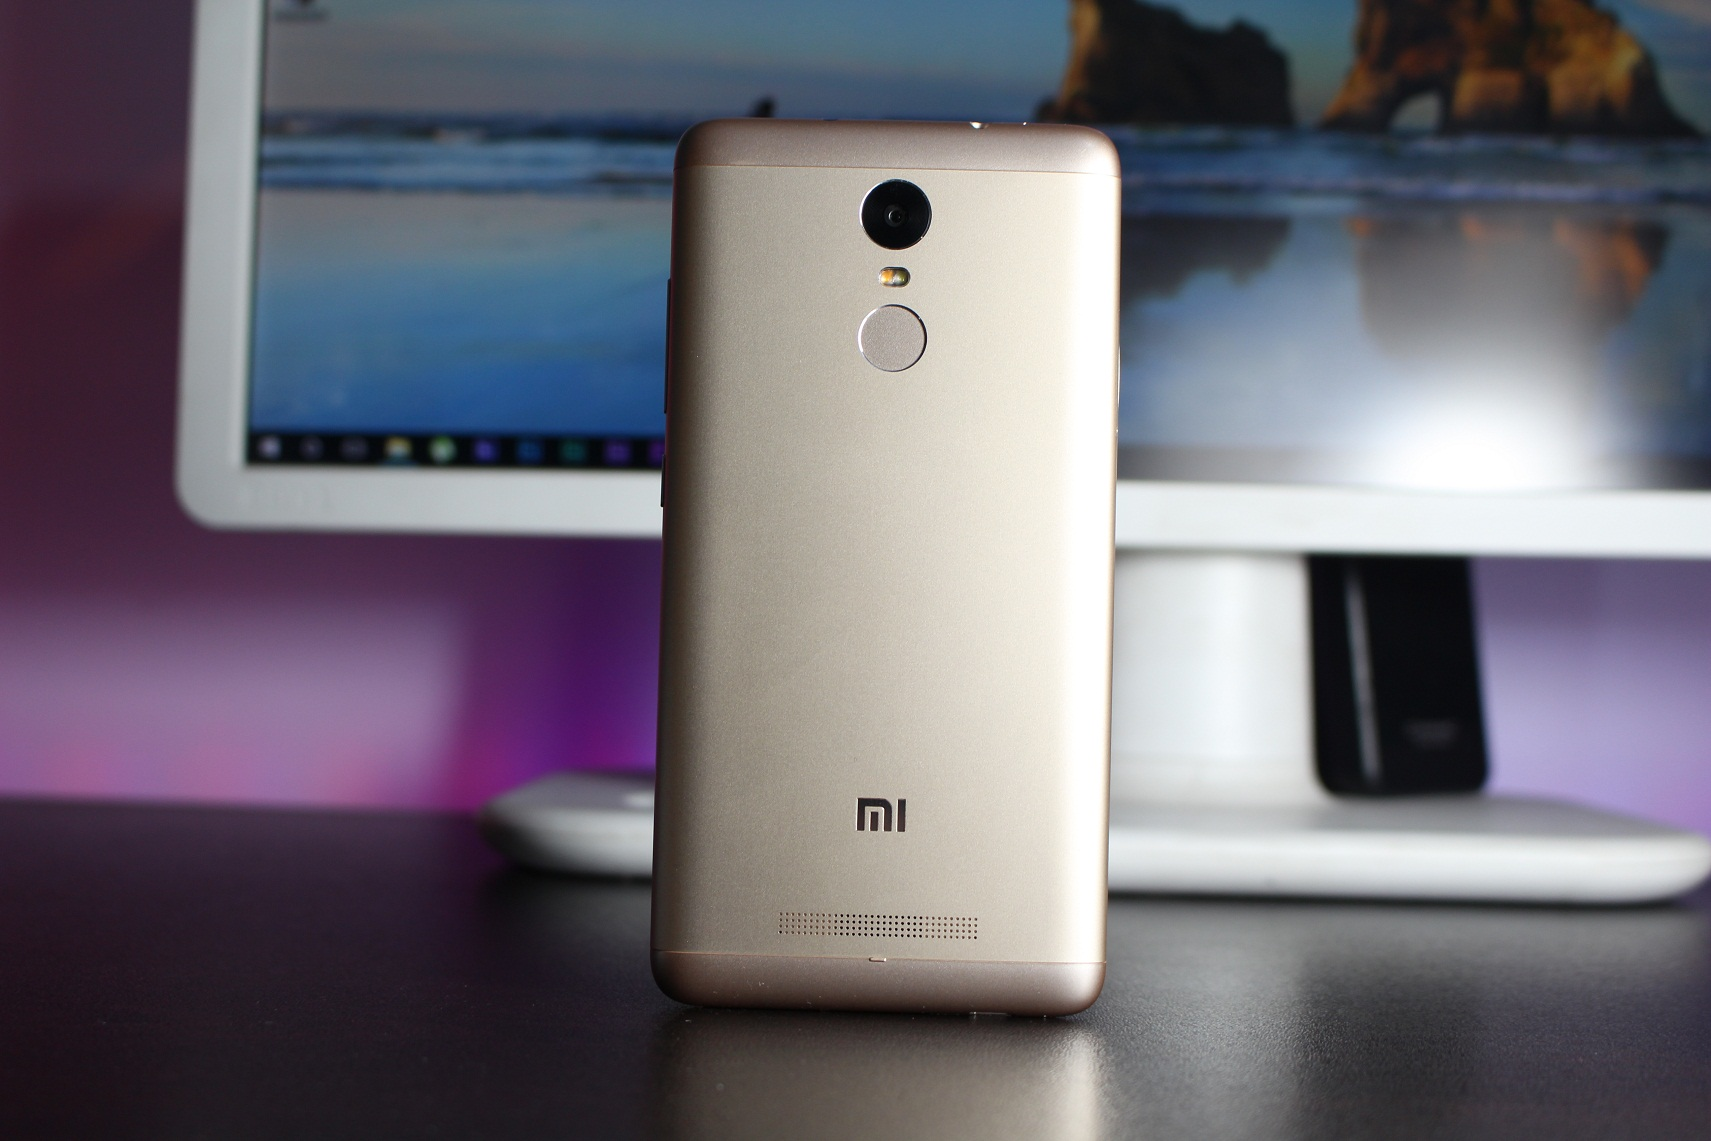 xiaomi redmi note 3 8